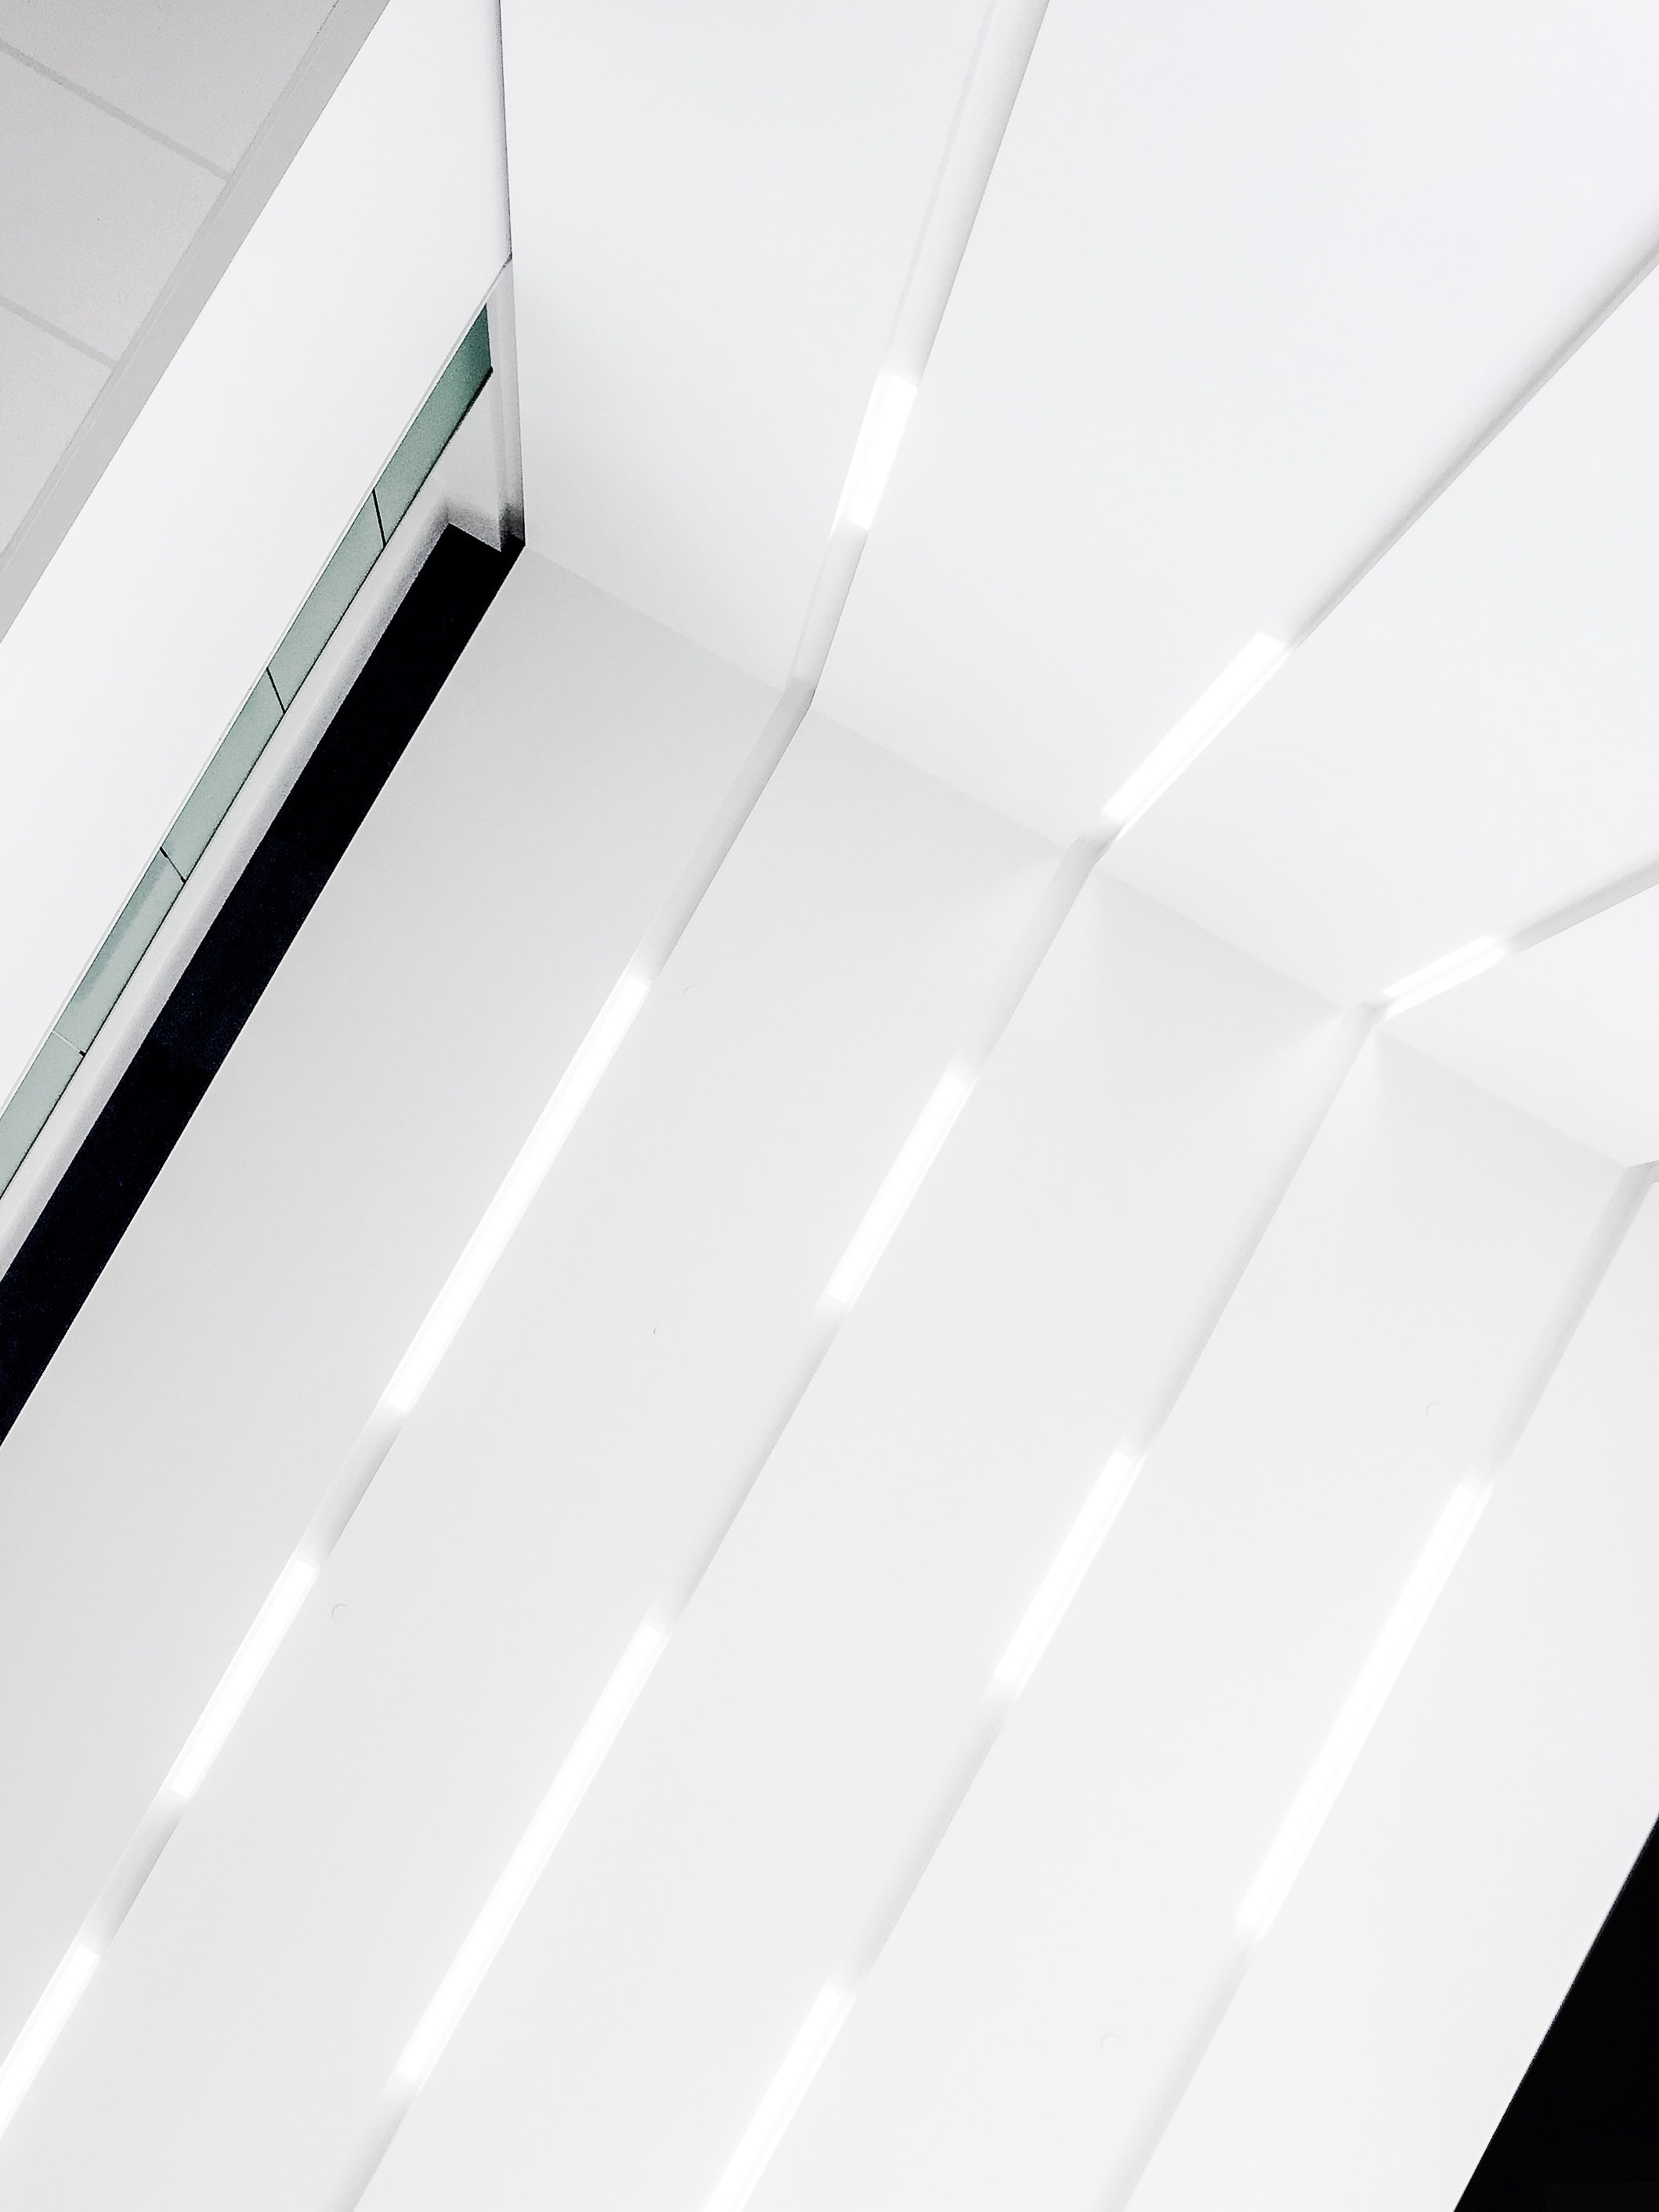 Grooves in a white facade